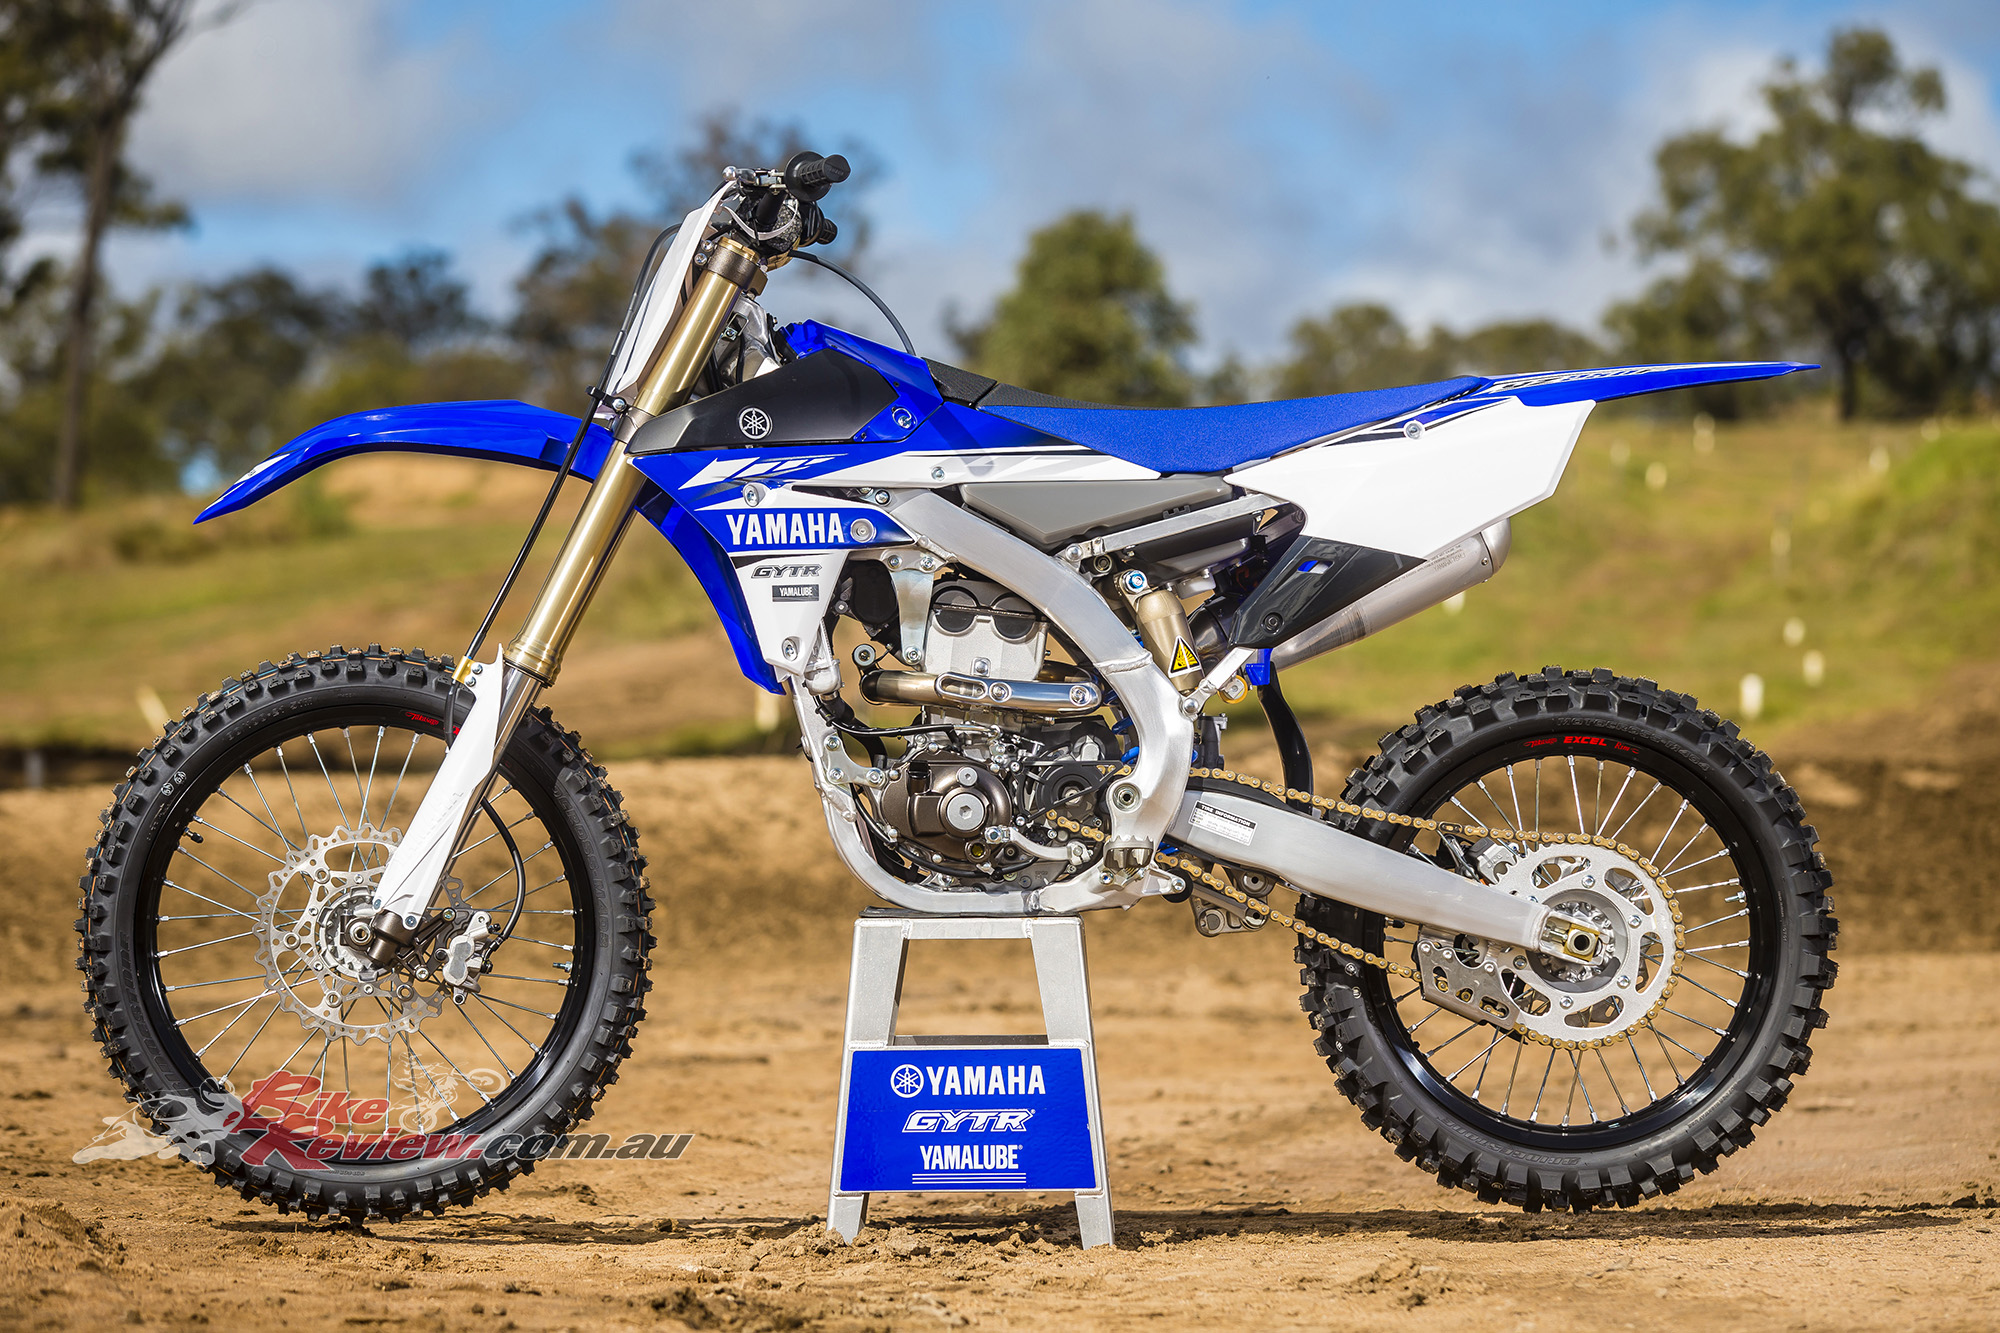 Honda Riding Gear >> 2017 Yamaha YZ250F, Major Revisions - Bike Review